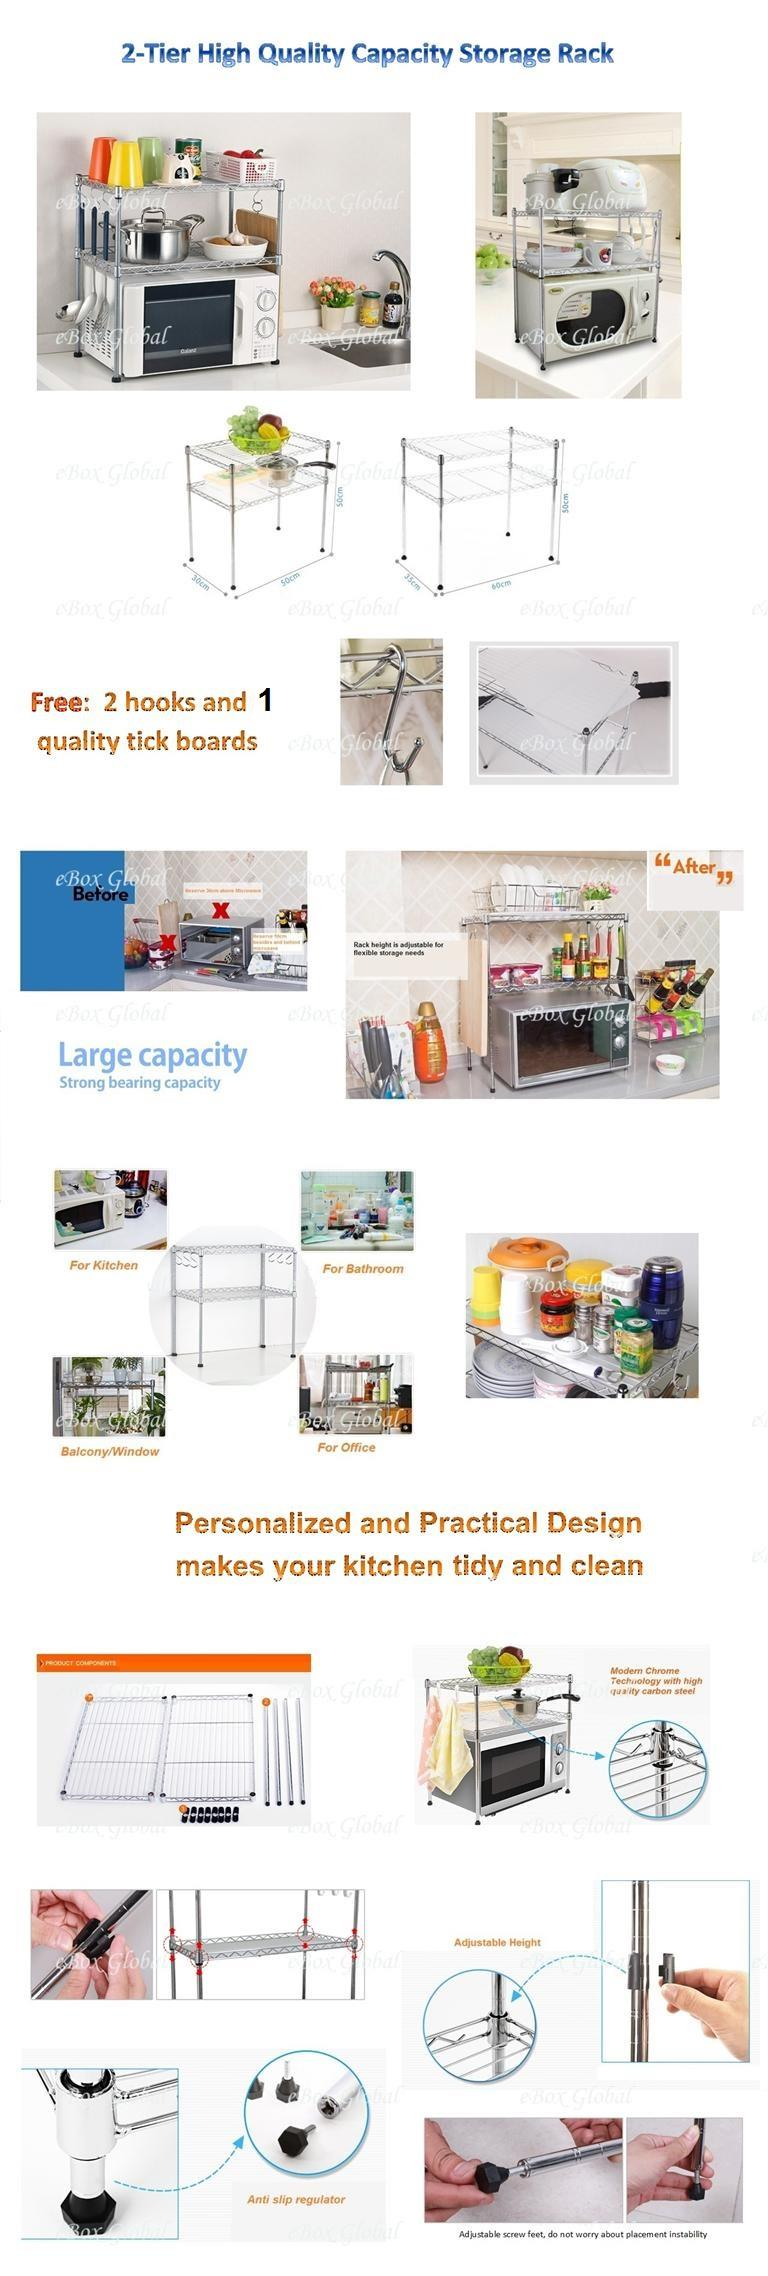 2-Tier High Quality Capacity Storage Rack 60cm(Large)